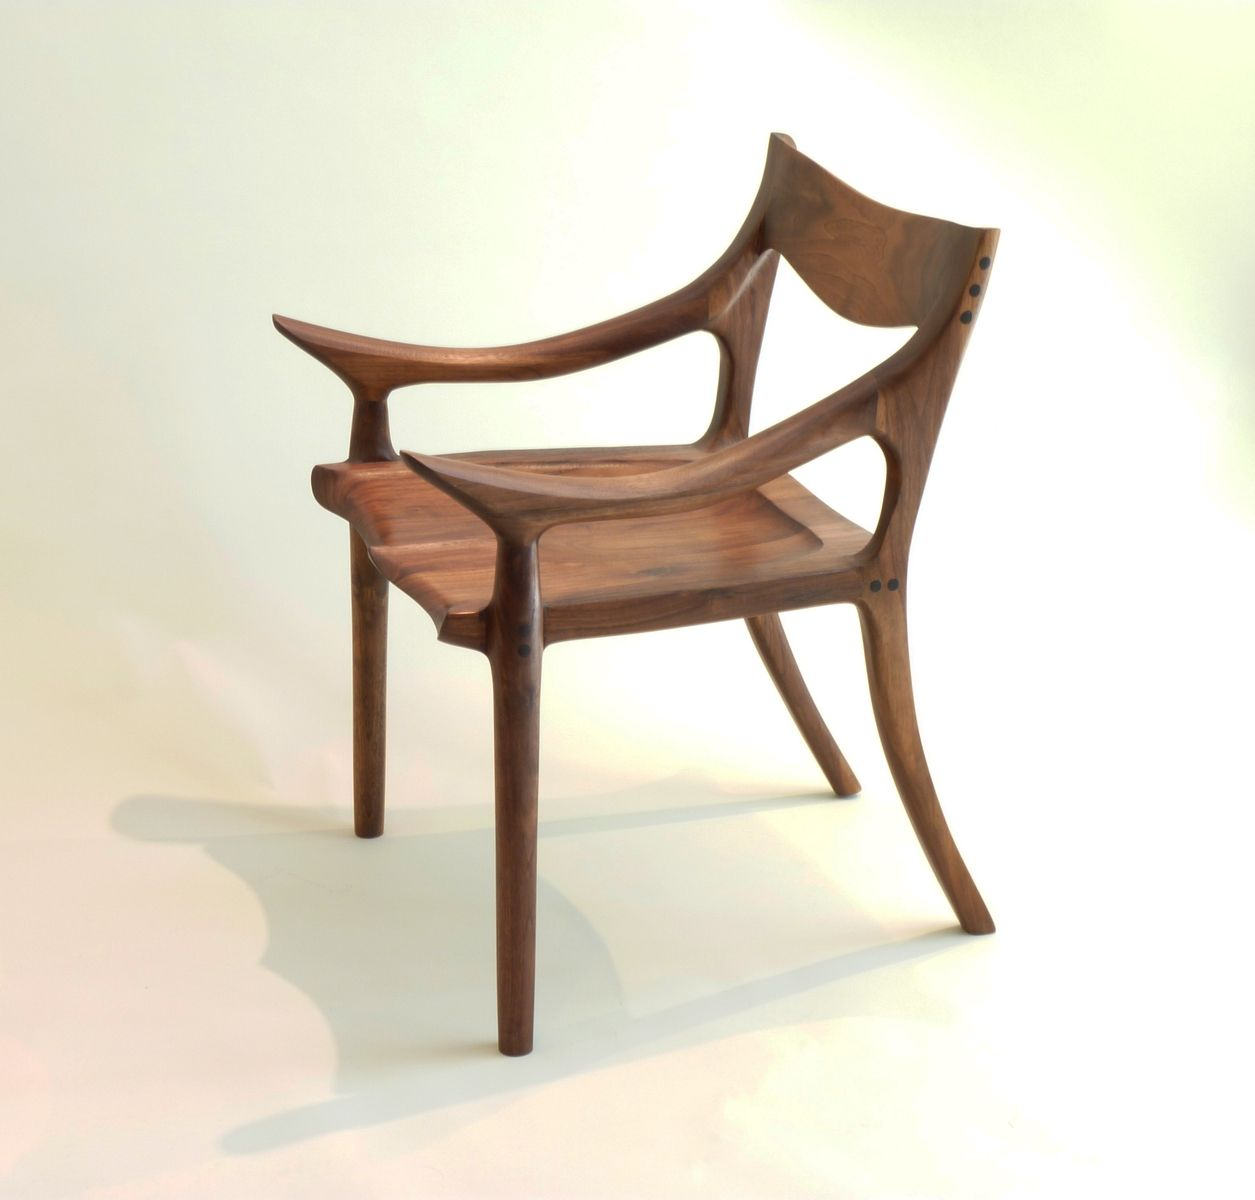 custom made throne chairs high back dining uk sam maloof style lowback chair by j blok